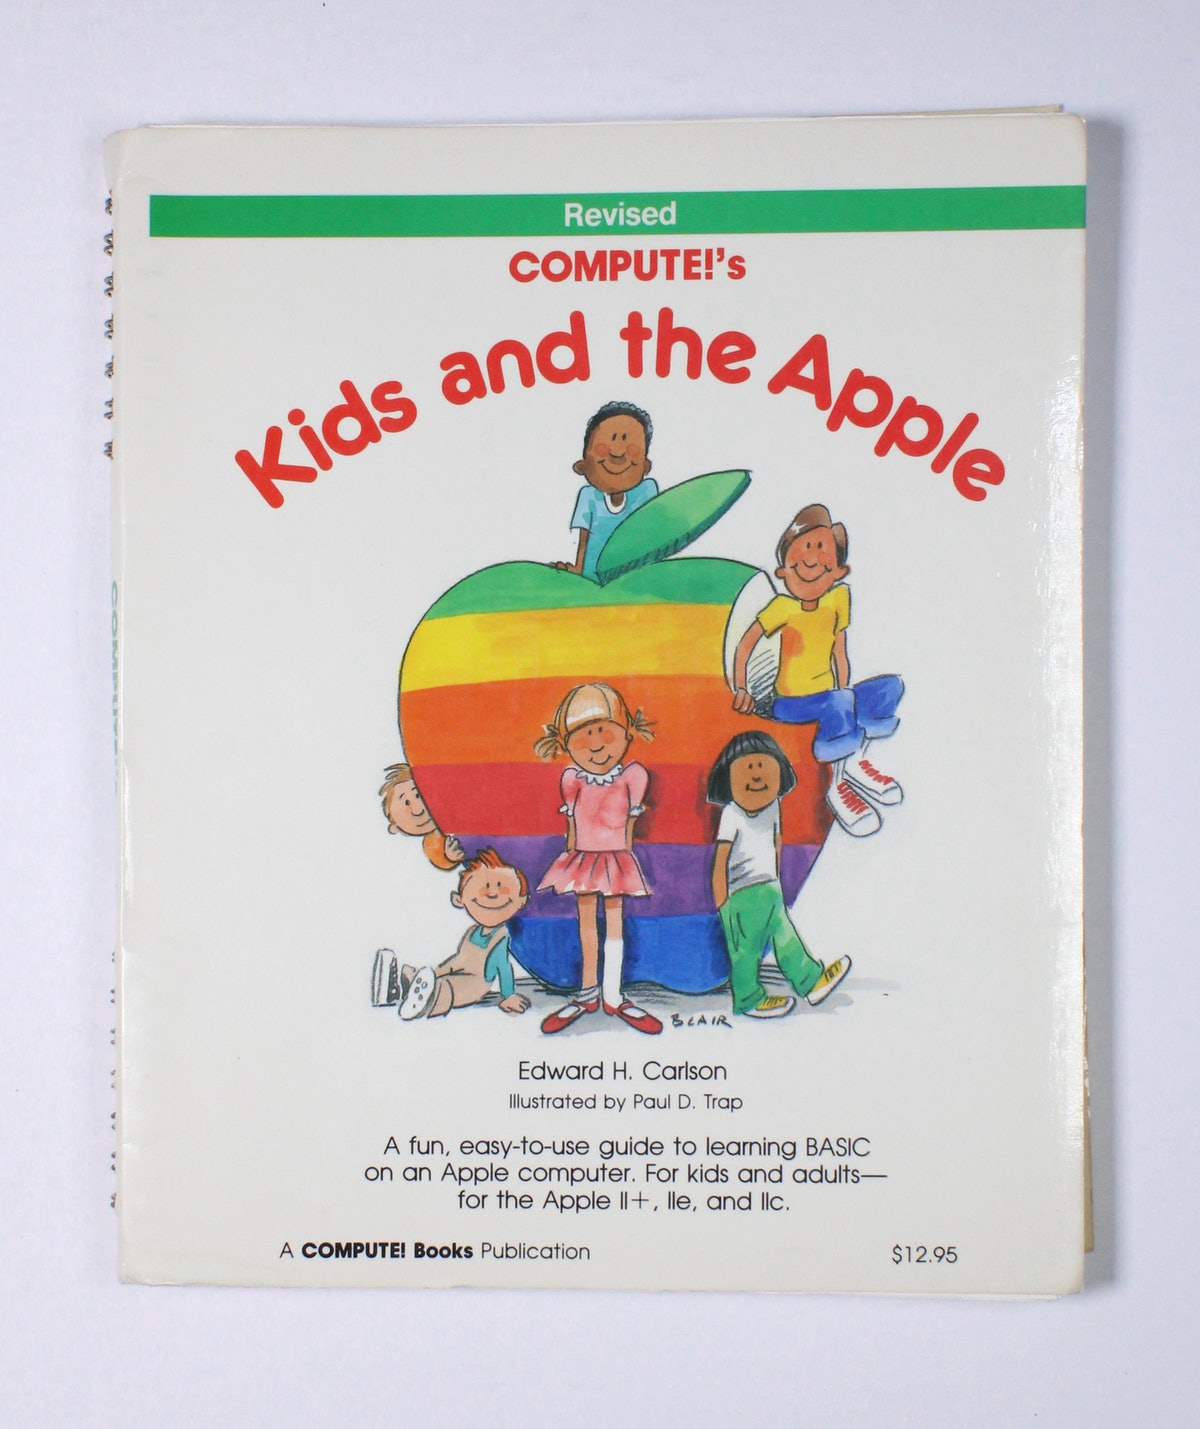 COMPUTE!'S Kids and the Apple